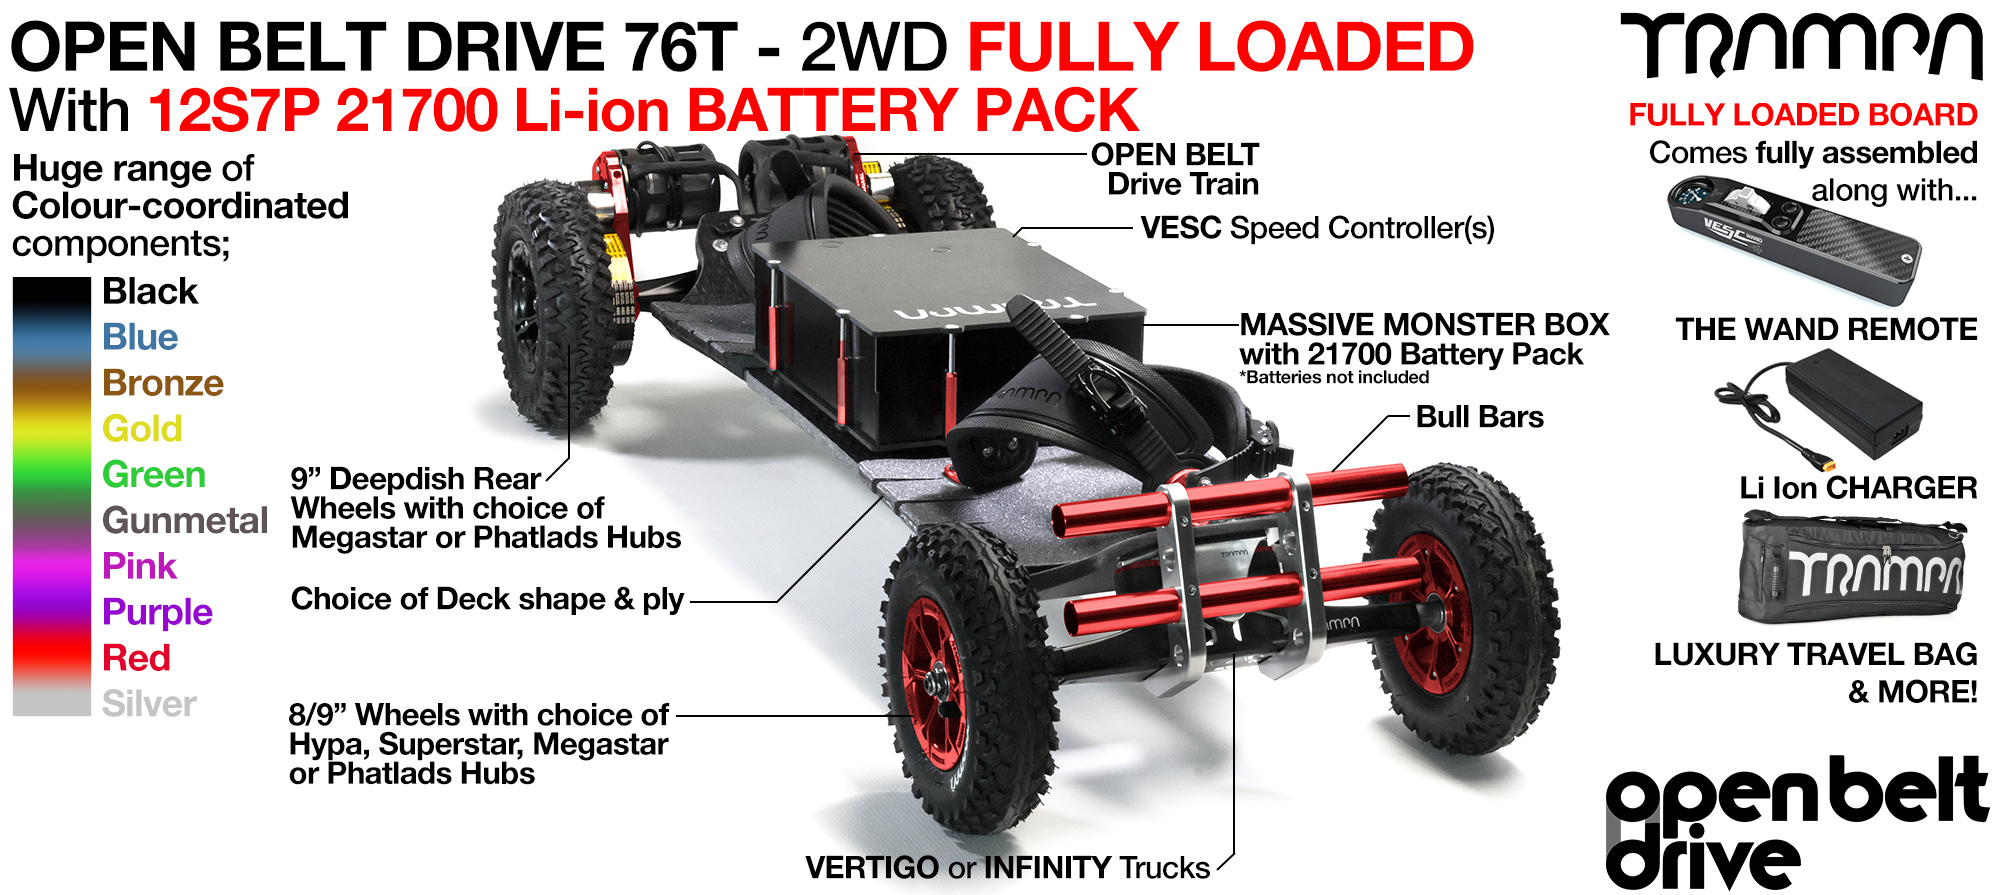 2WD 66T Open Belt Drive TRAMPA Electric Mountainboard with 9Inch Wheels & 76 Tooth Pulleys - LOADED 21700 Cell Pack